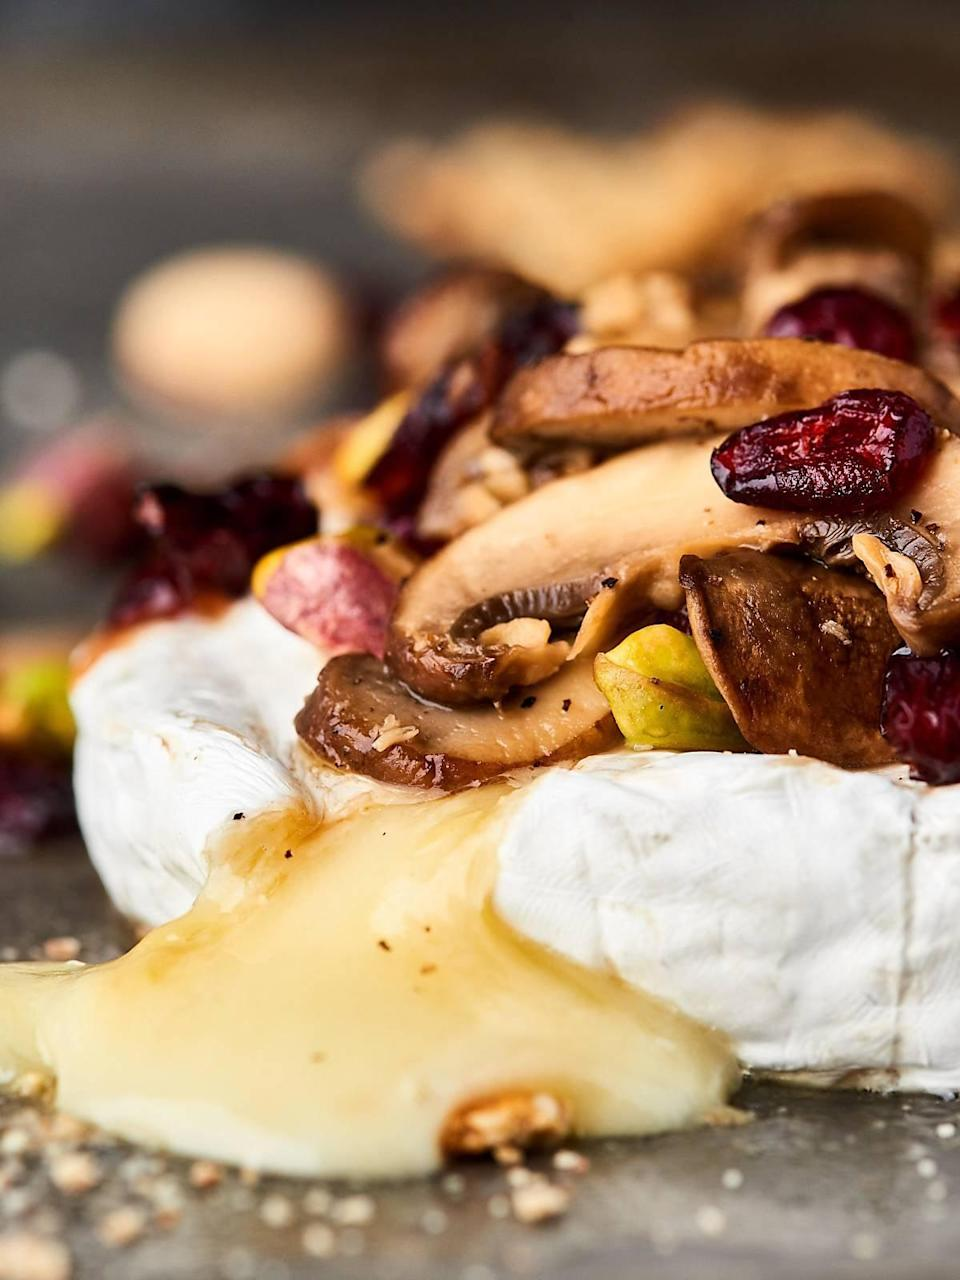 """<p>Mushrooms and brie go hand-in-hand to make this cheesy app one to remember. Warm cheese is topped with cooked mushrooms, nutty pistachios, and brut champagne, meaning this easy dish is not only impressive, but also easy to make.</p> <p><strong>Get the recipe</strong>: <a href=""""https://showmetheyummy.com/mushroom-brut-brie-recipe/"""" class=""""link rapid-noclick-resp"""" rel=""""nofollow noopener"""" target=""""_blank"""" data-ylk=""""slk:mushroom brut brie"""">mushroom brut brie</a></p>"""